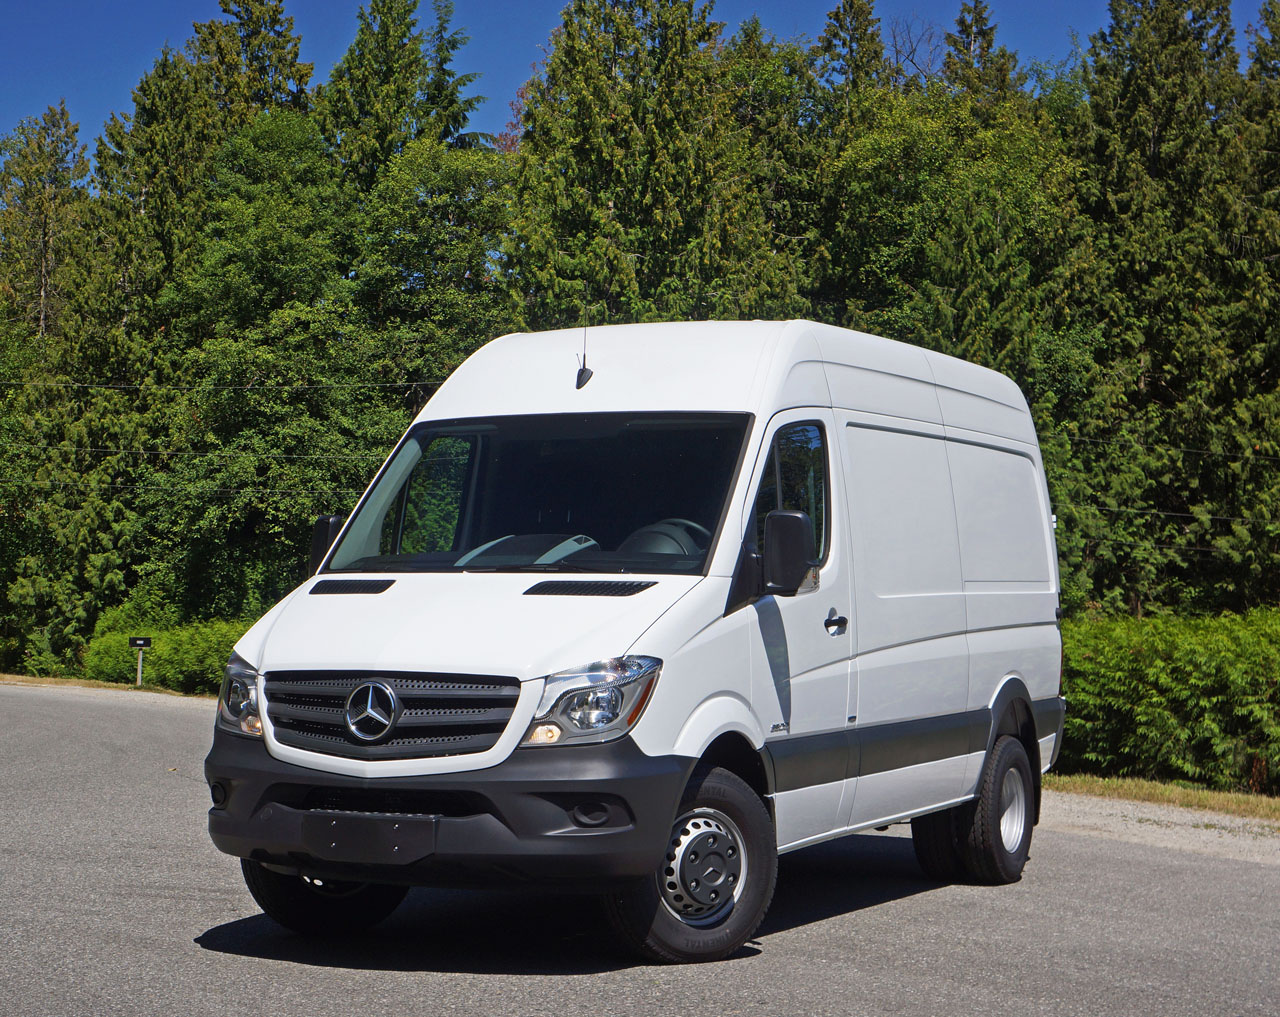 We Can Thank Mercedes Sprinter For The New Wave Of Commercial Vans Available To Businesses And RV Owners Opening Up A